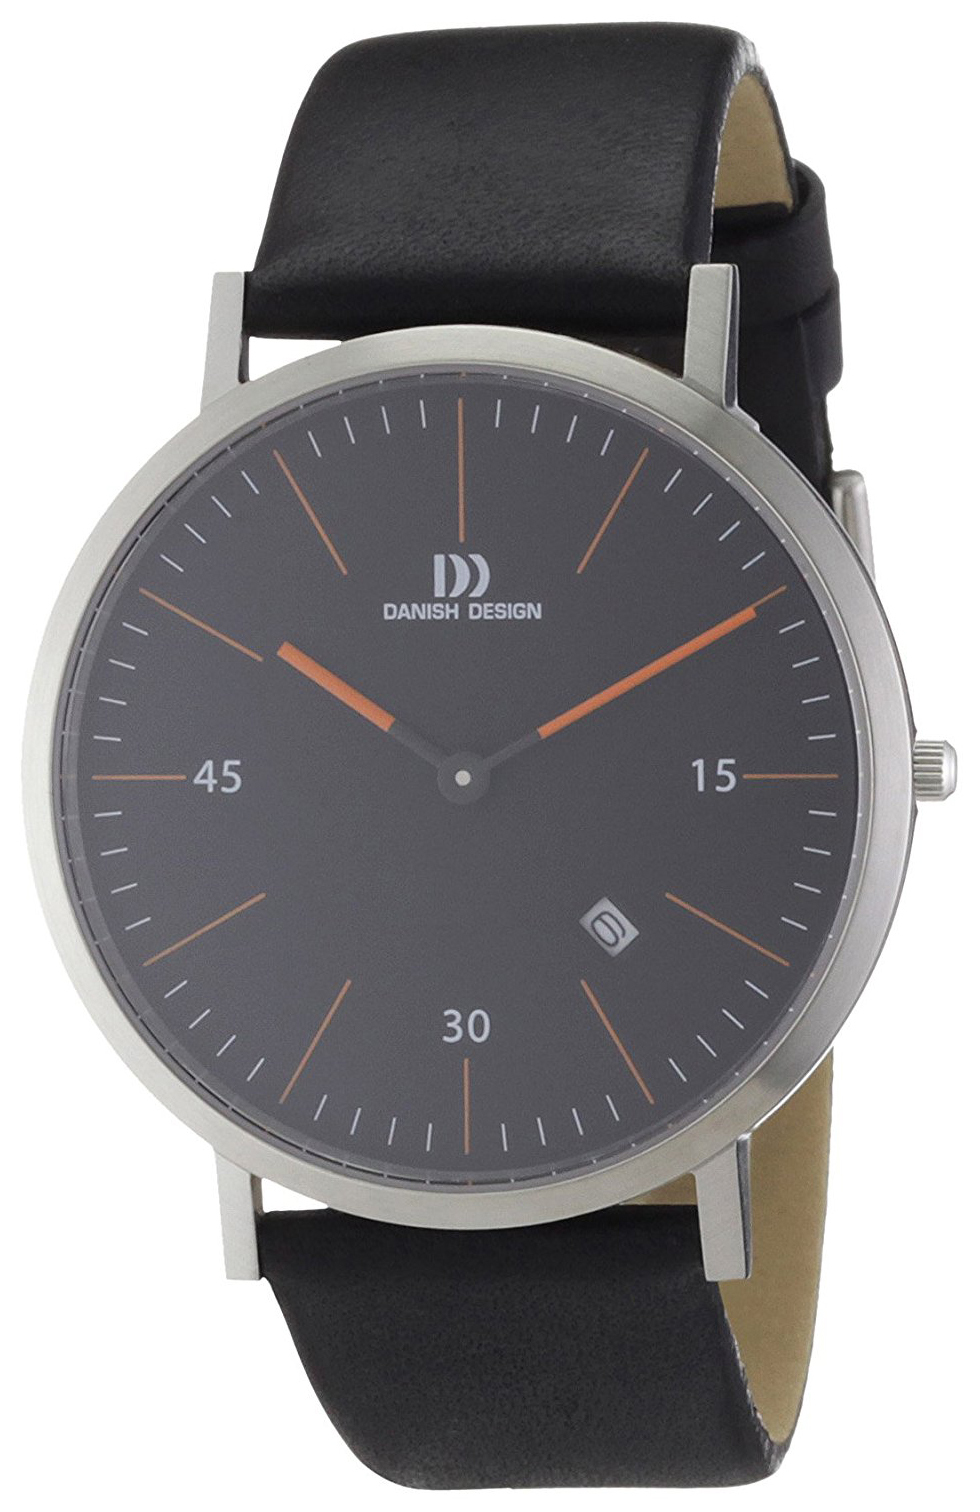 Danish Design Classic Herrklocka 3314381 Svart/Läder Ø40 mm - Danish Design